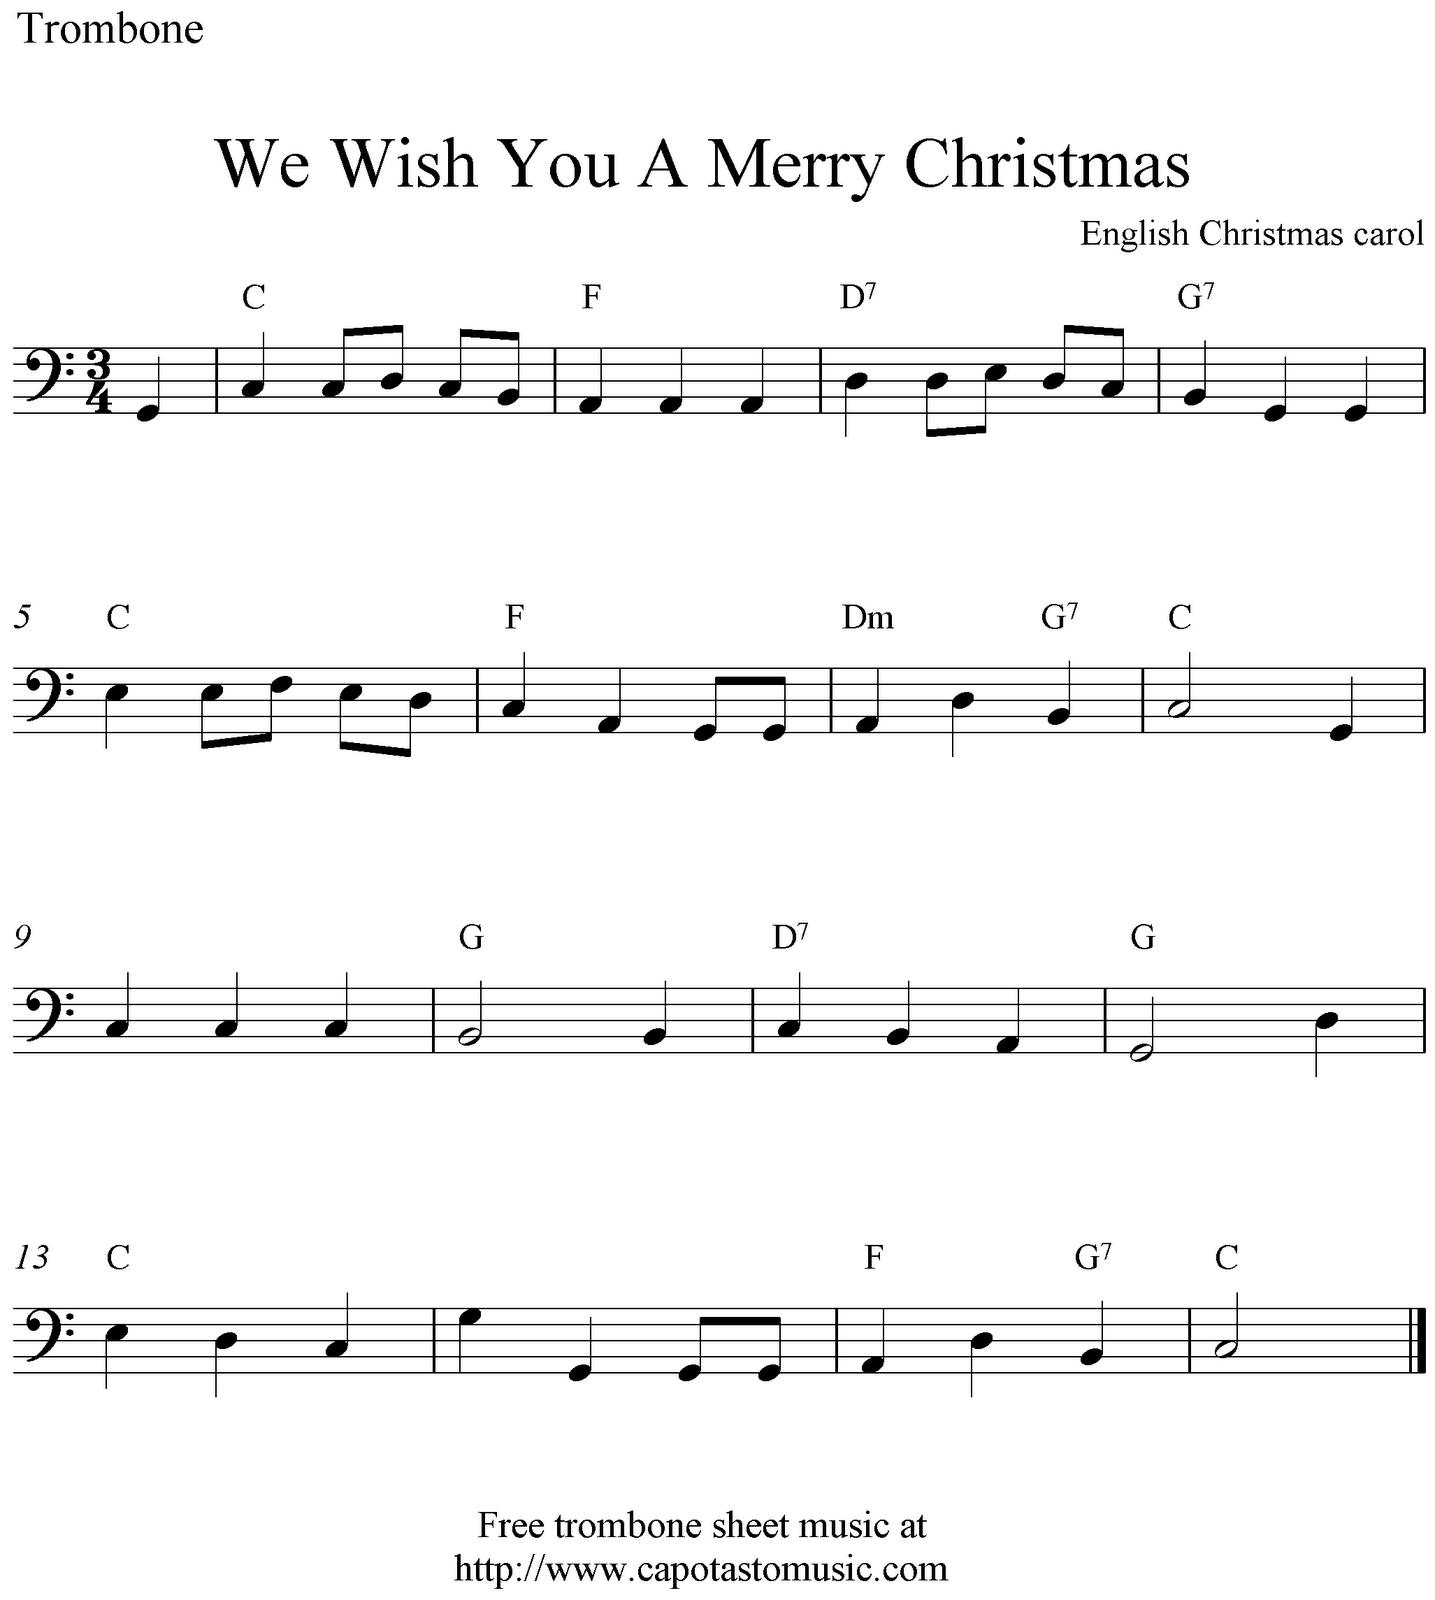 We Wish You A Merry Christmas Piano.Free Christmas Piano Sheet Music We Wish You A Merry Christmas